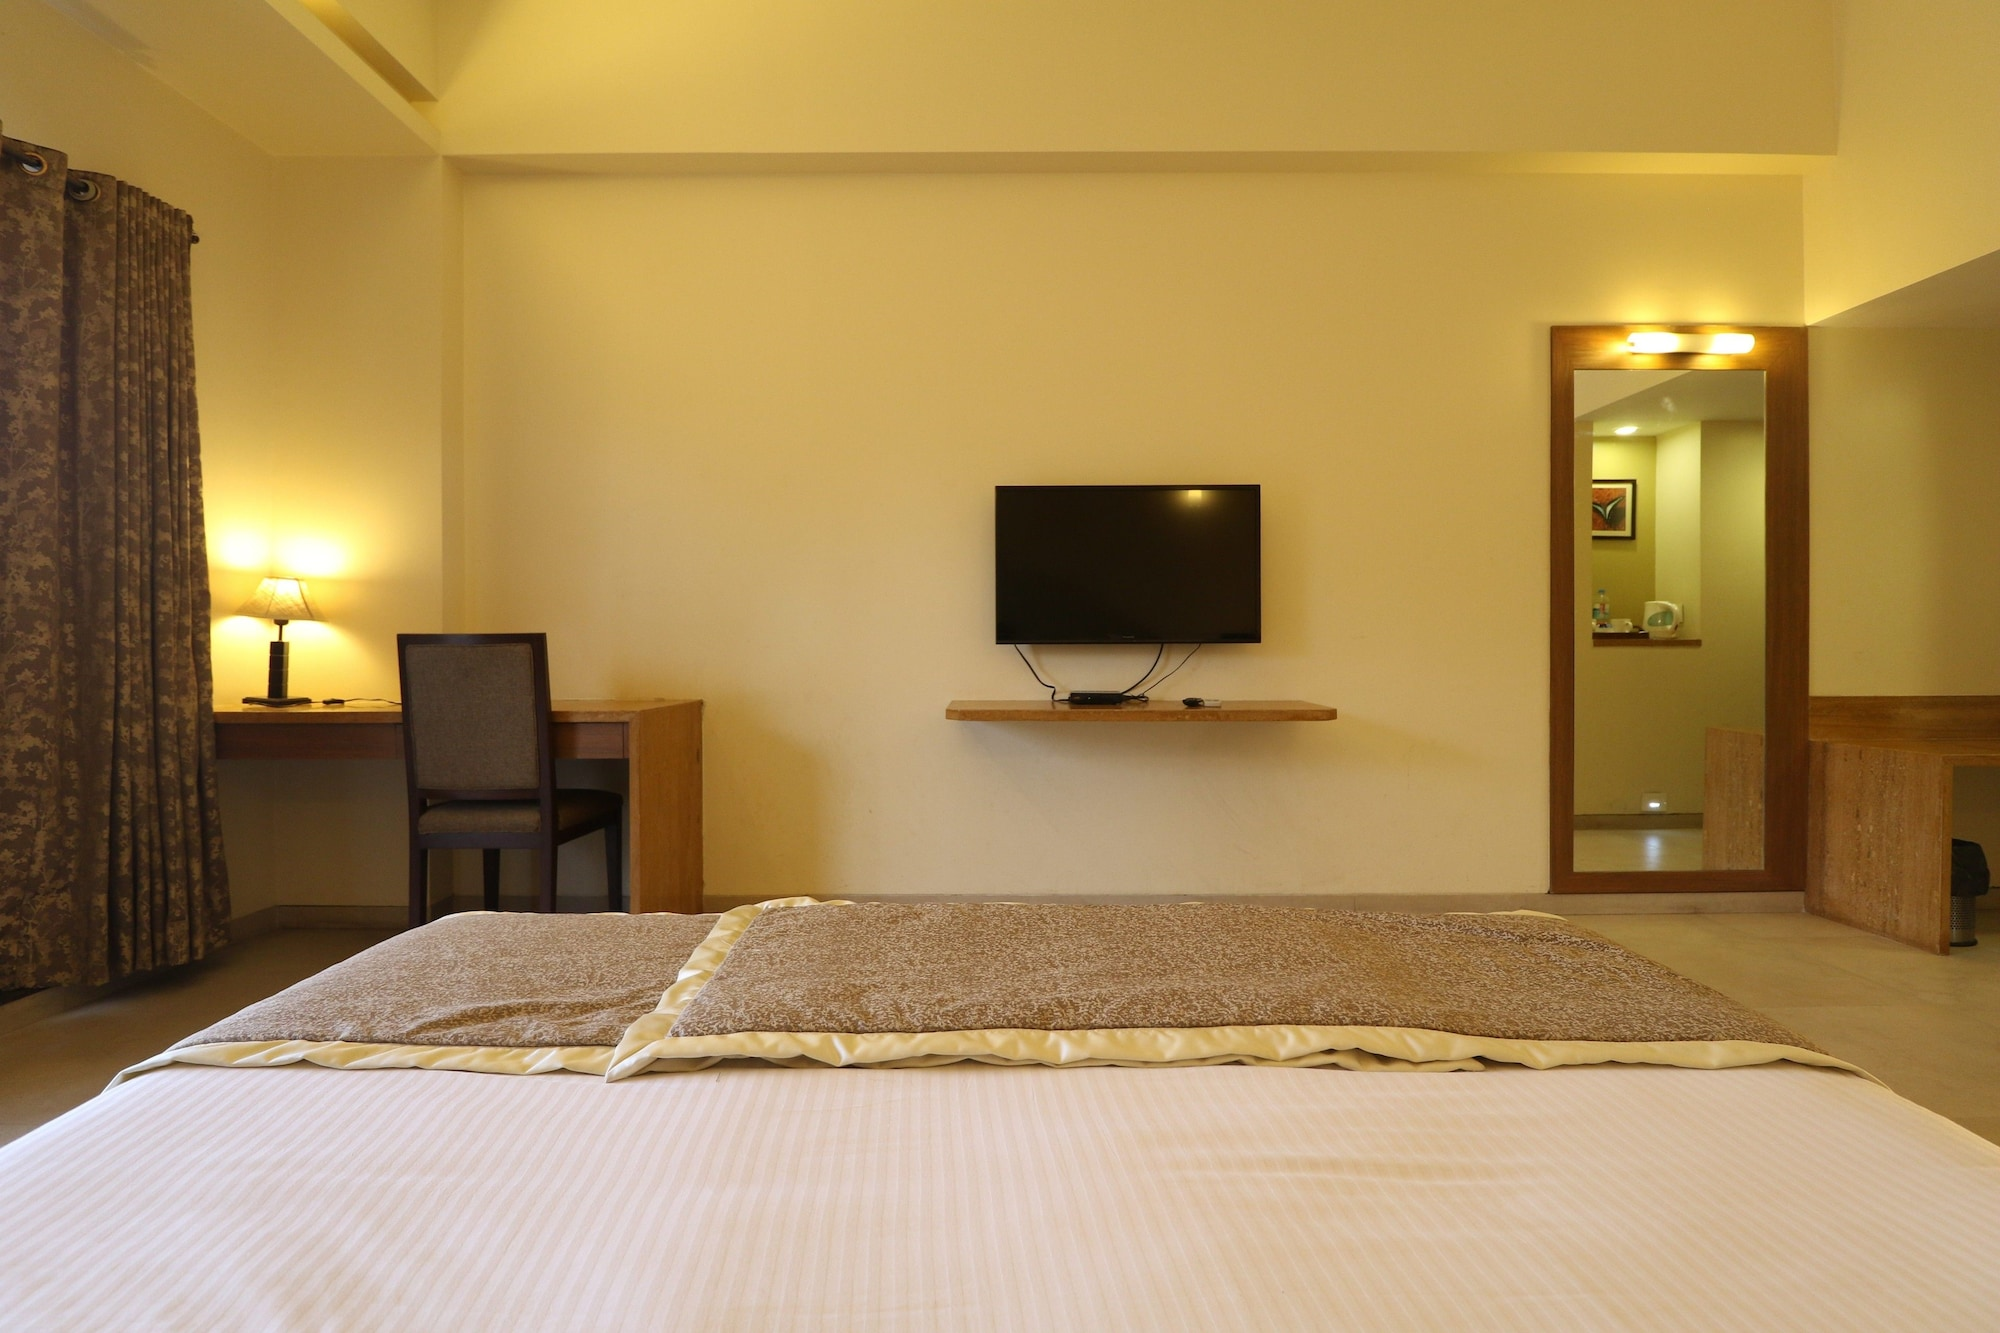 VITS Kamats Resort, Dadra and Nagar Haveli